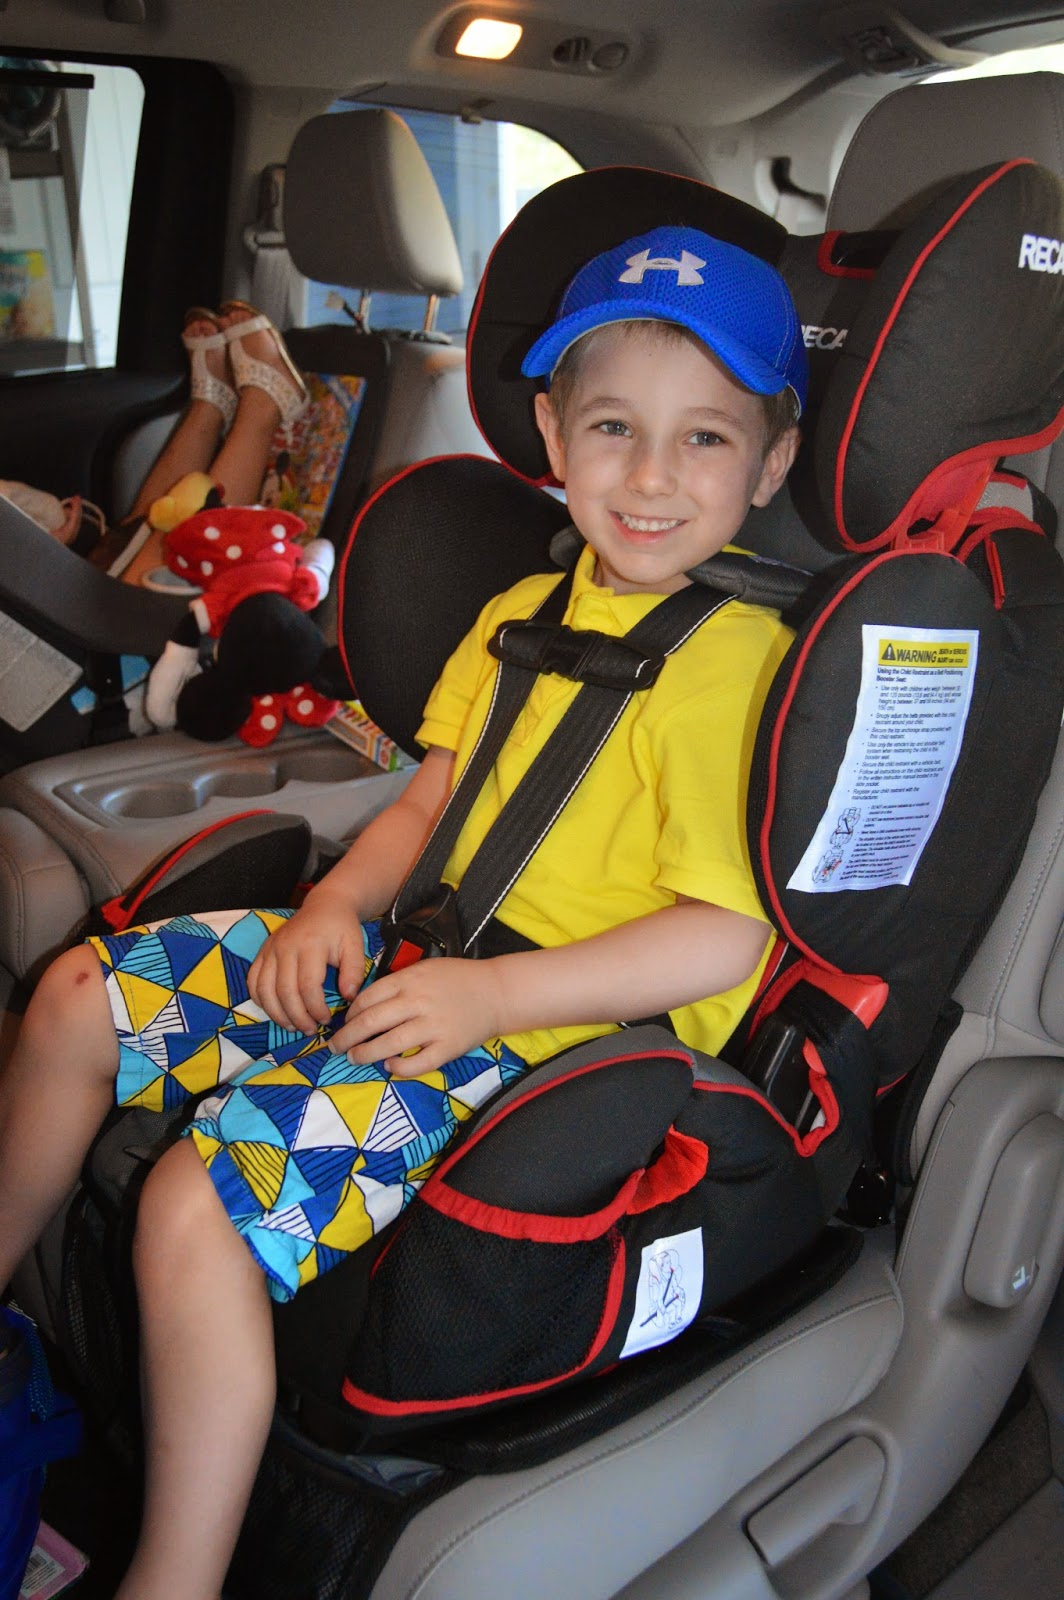 The Journey Of Parenthood Car Seat Safety Beyond Age 2